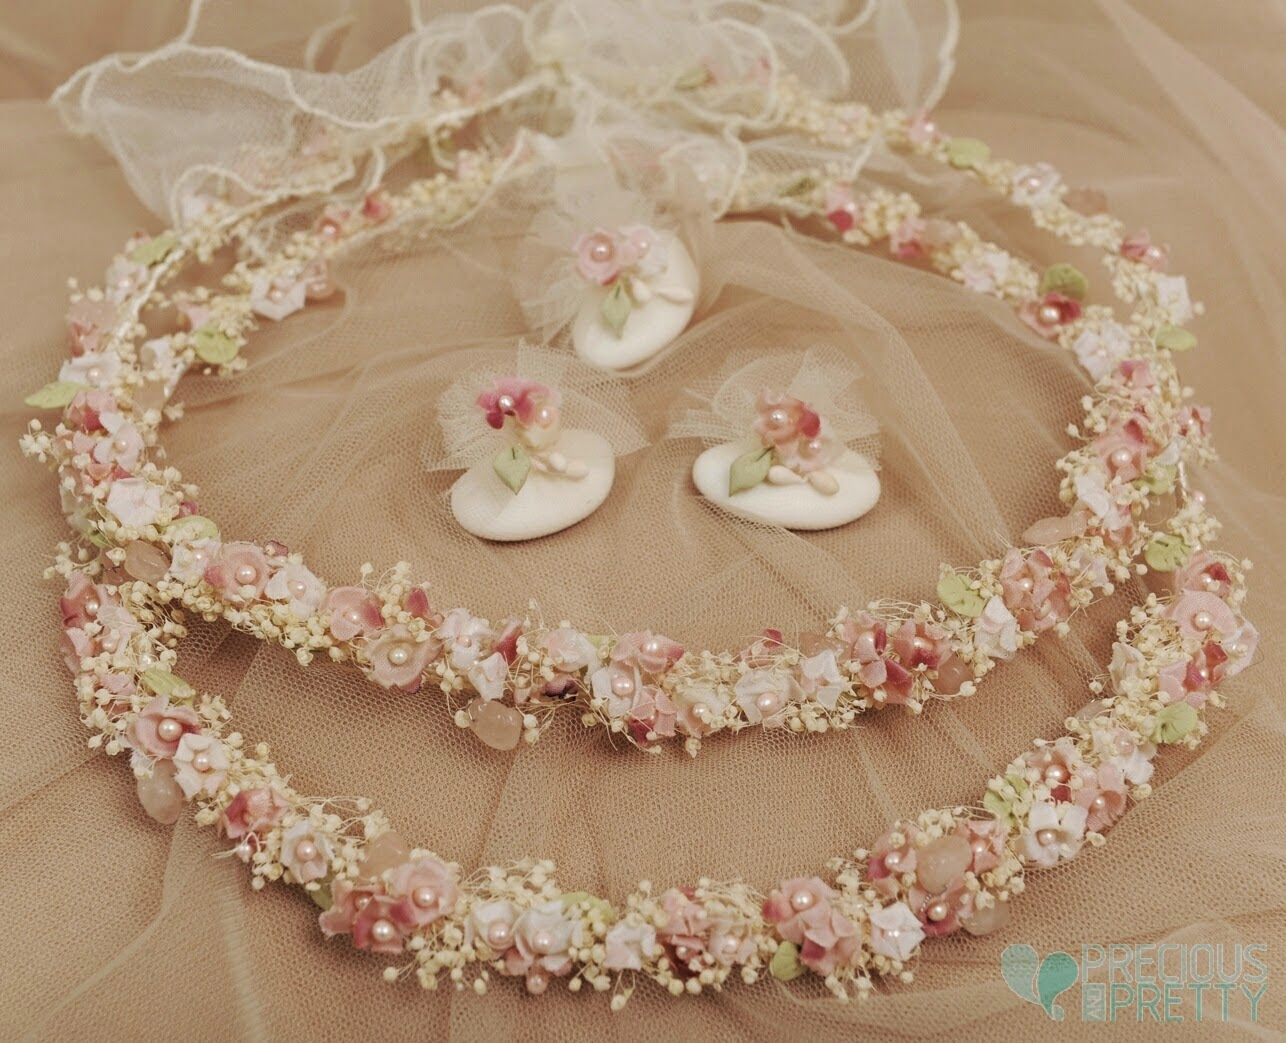 Flower wedding crowns in pink color